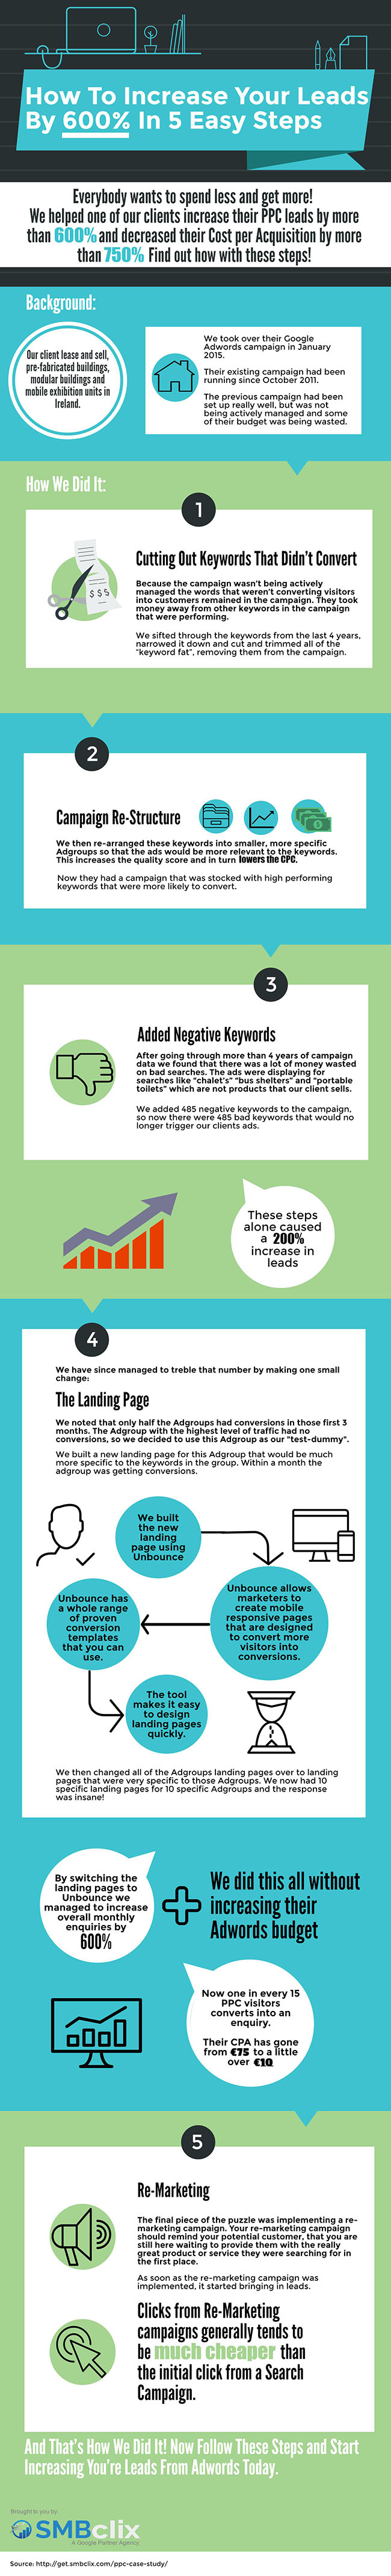 Increase your leads infographic